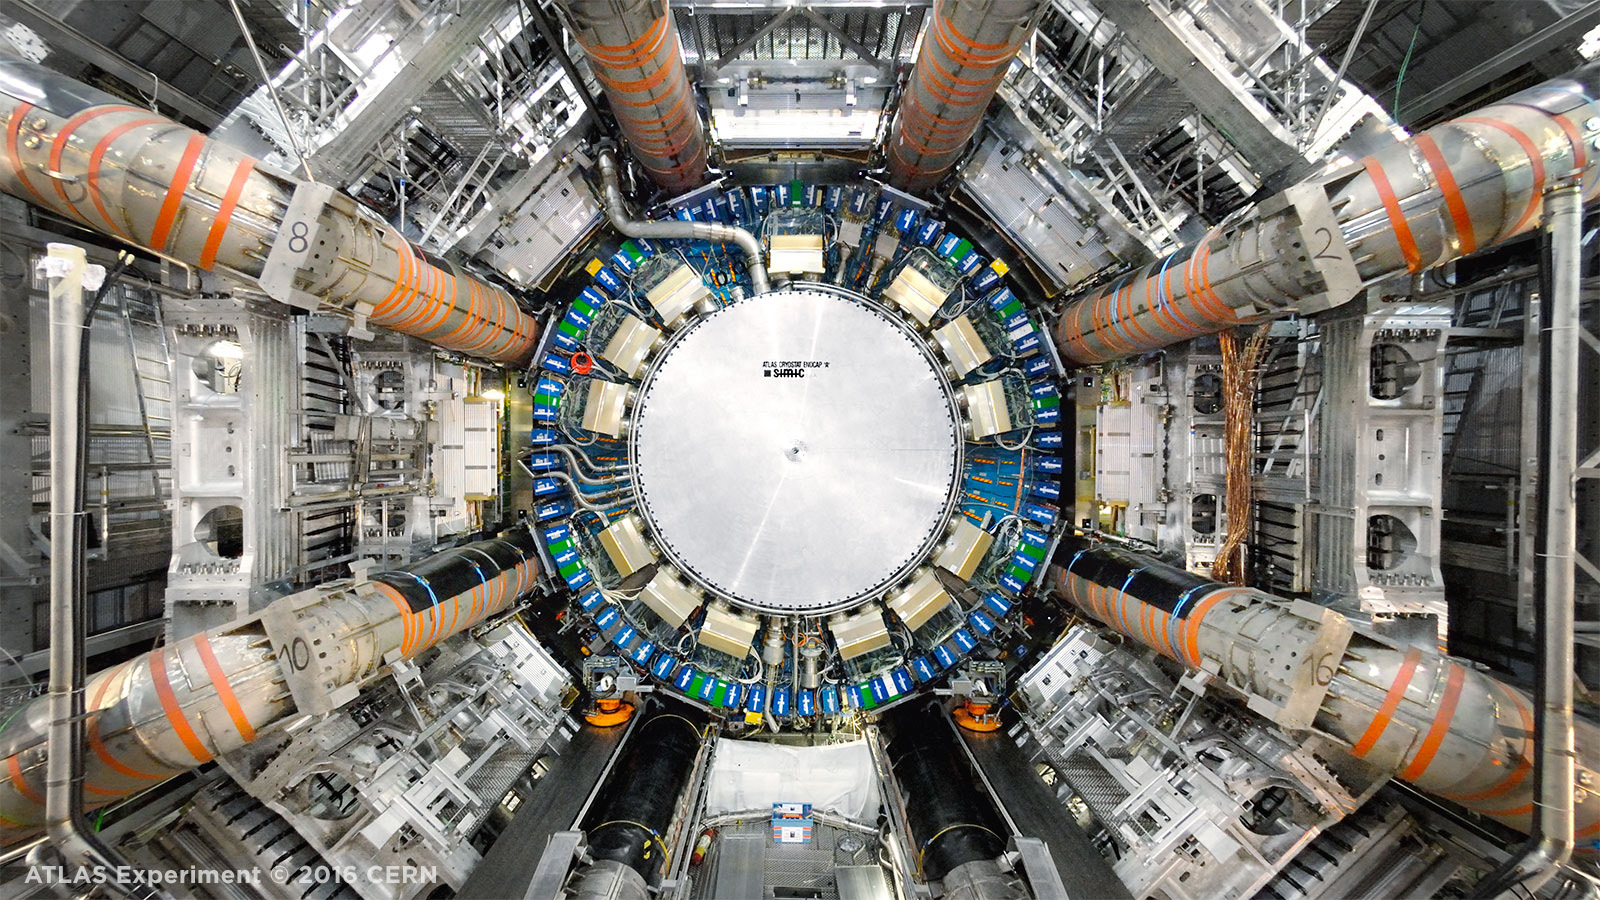 UNM technology playing crucial role in Large Hadron Collider discoveries